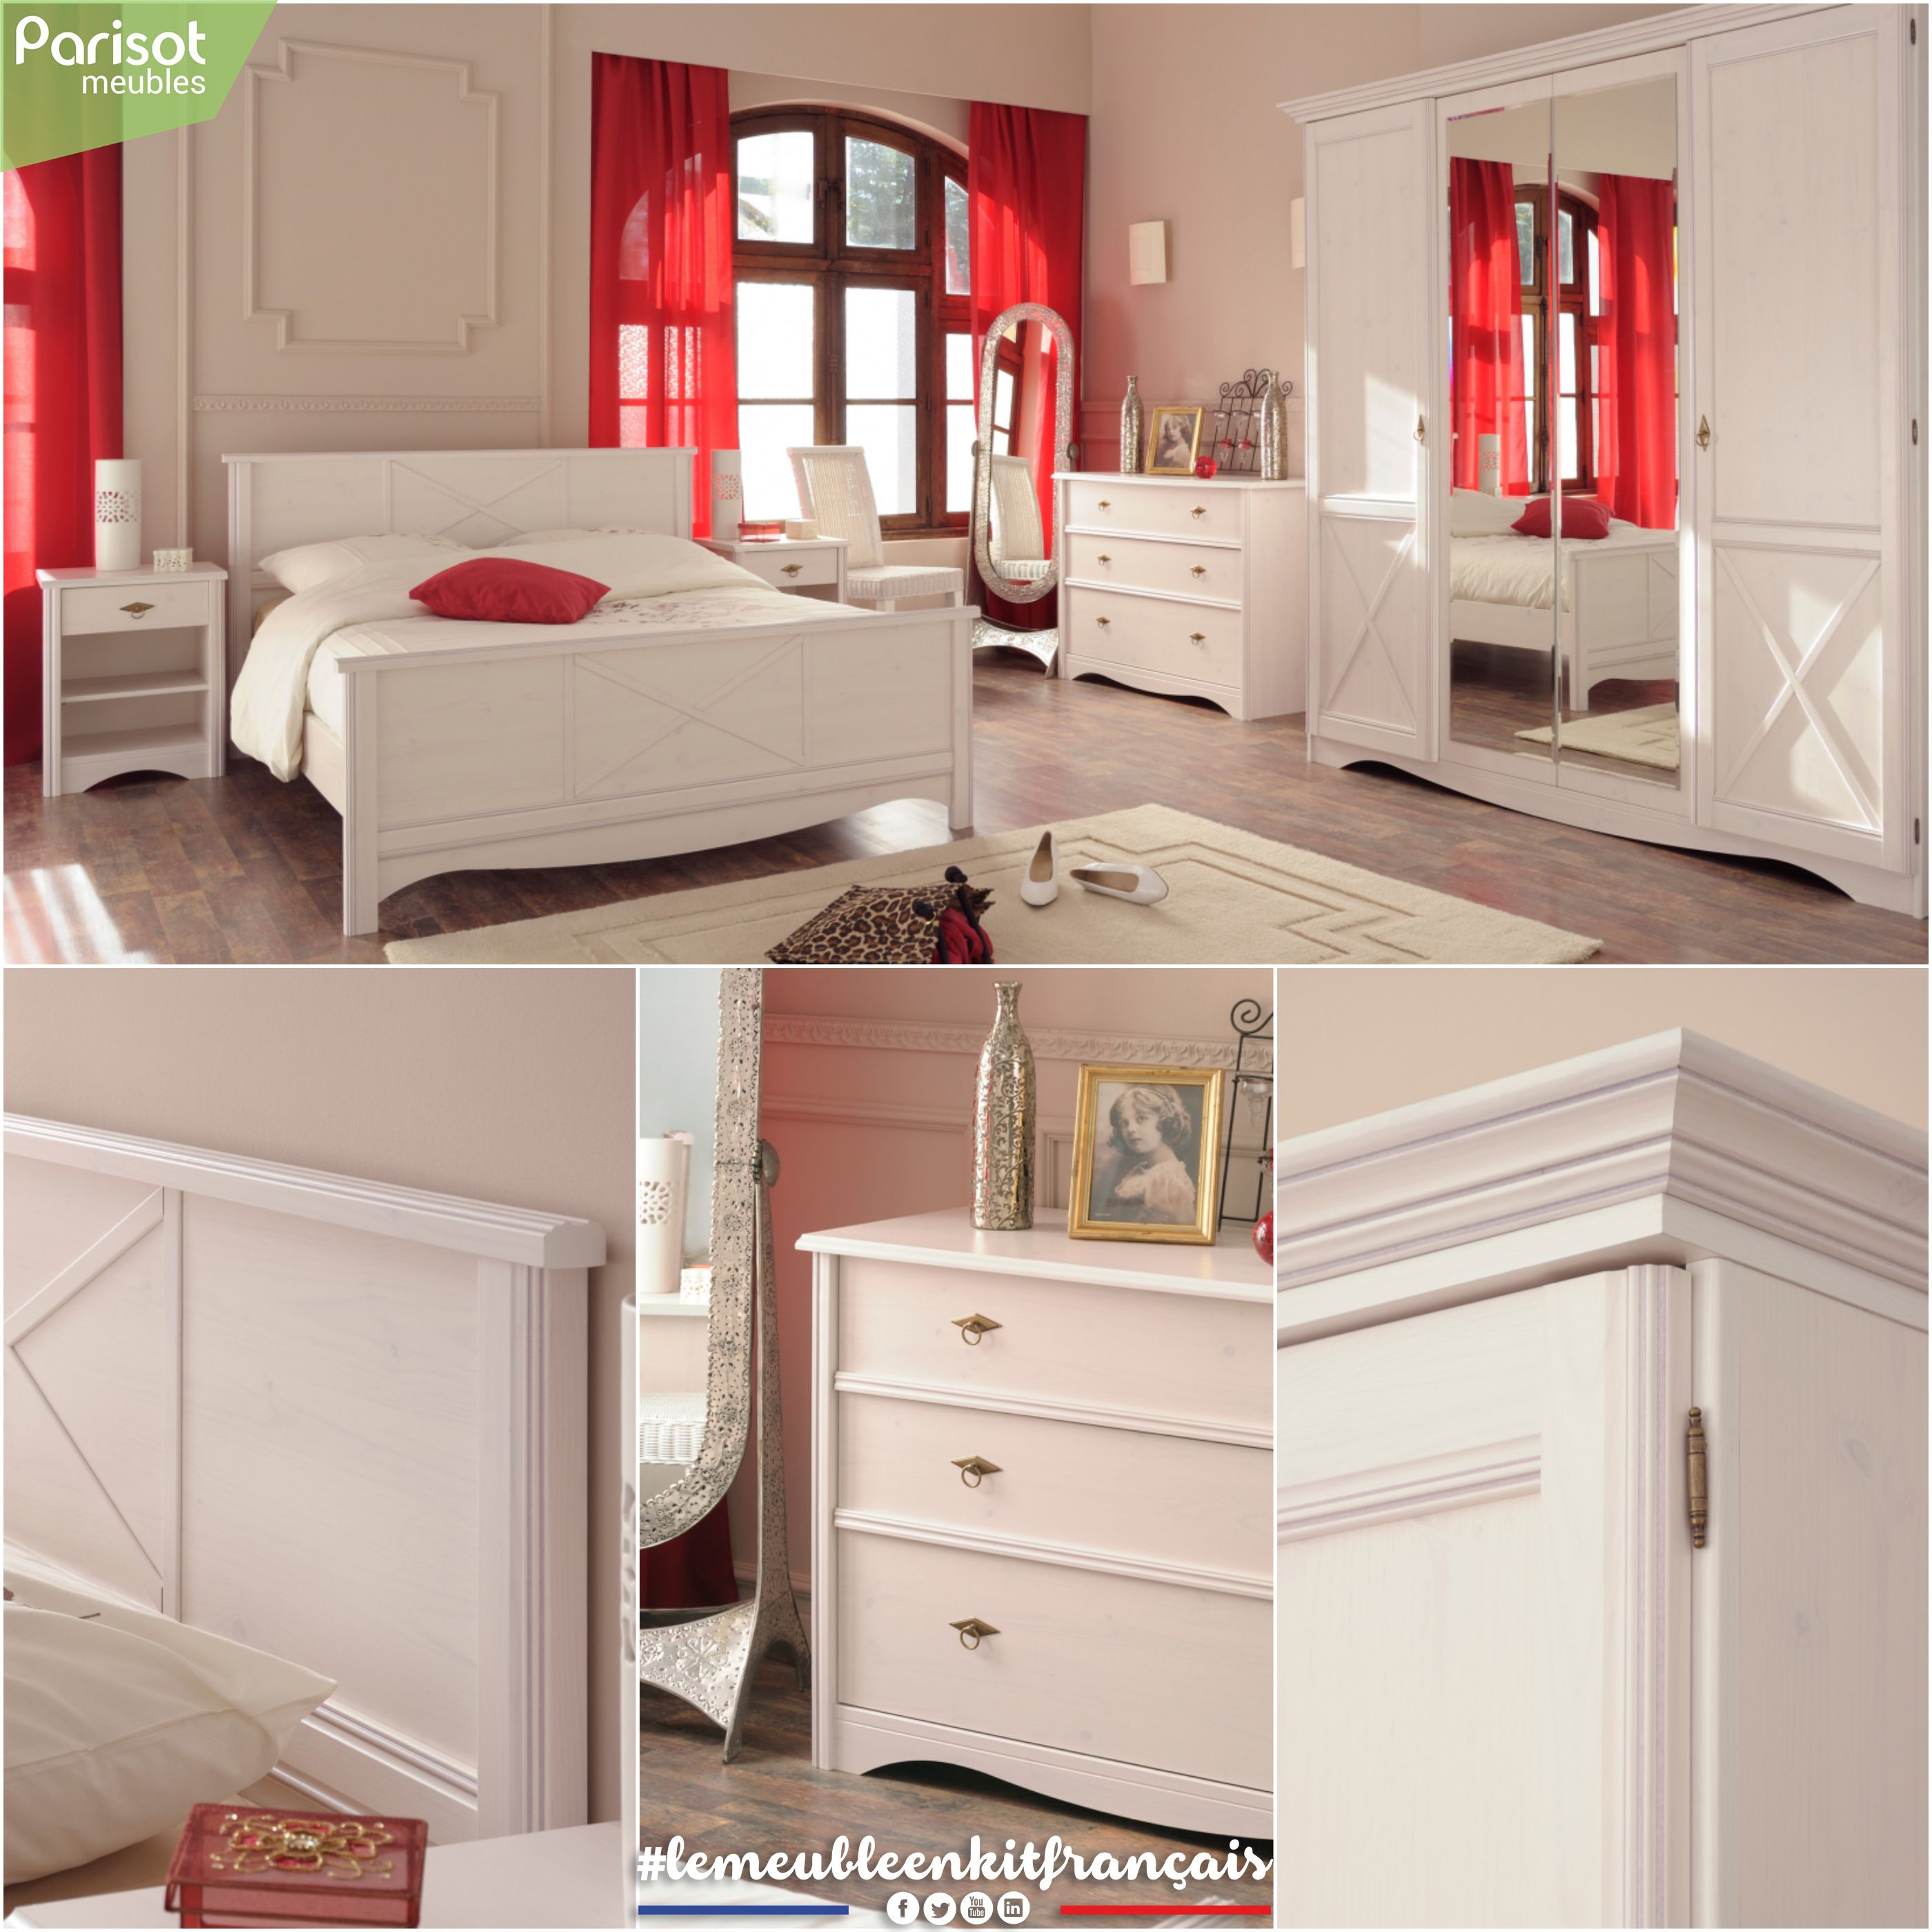 Marion By Parisot Meubles A Range Of Pure And Elegant Pieces Of Furniture,  Perfect To